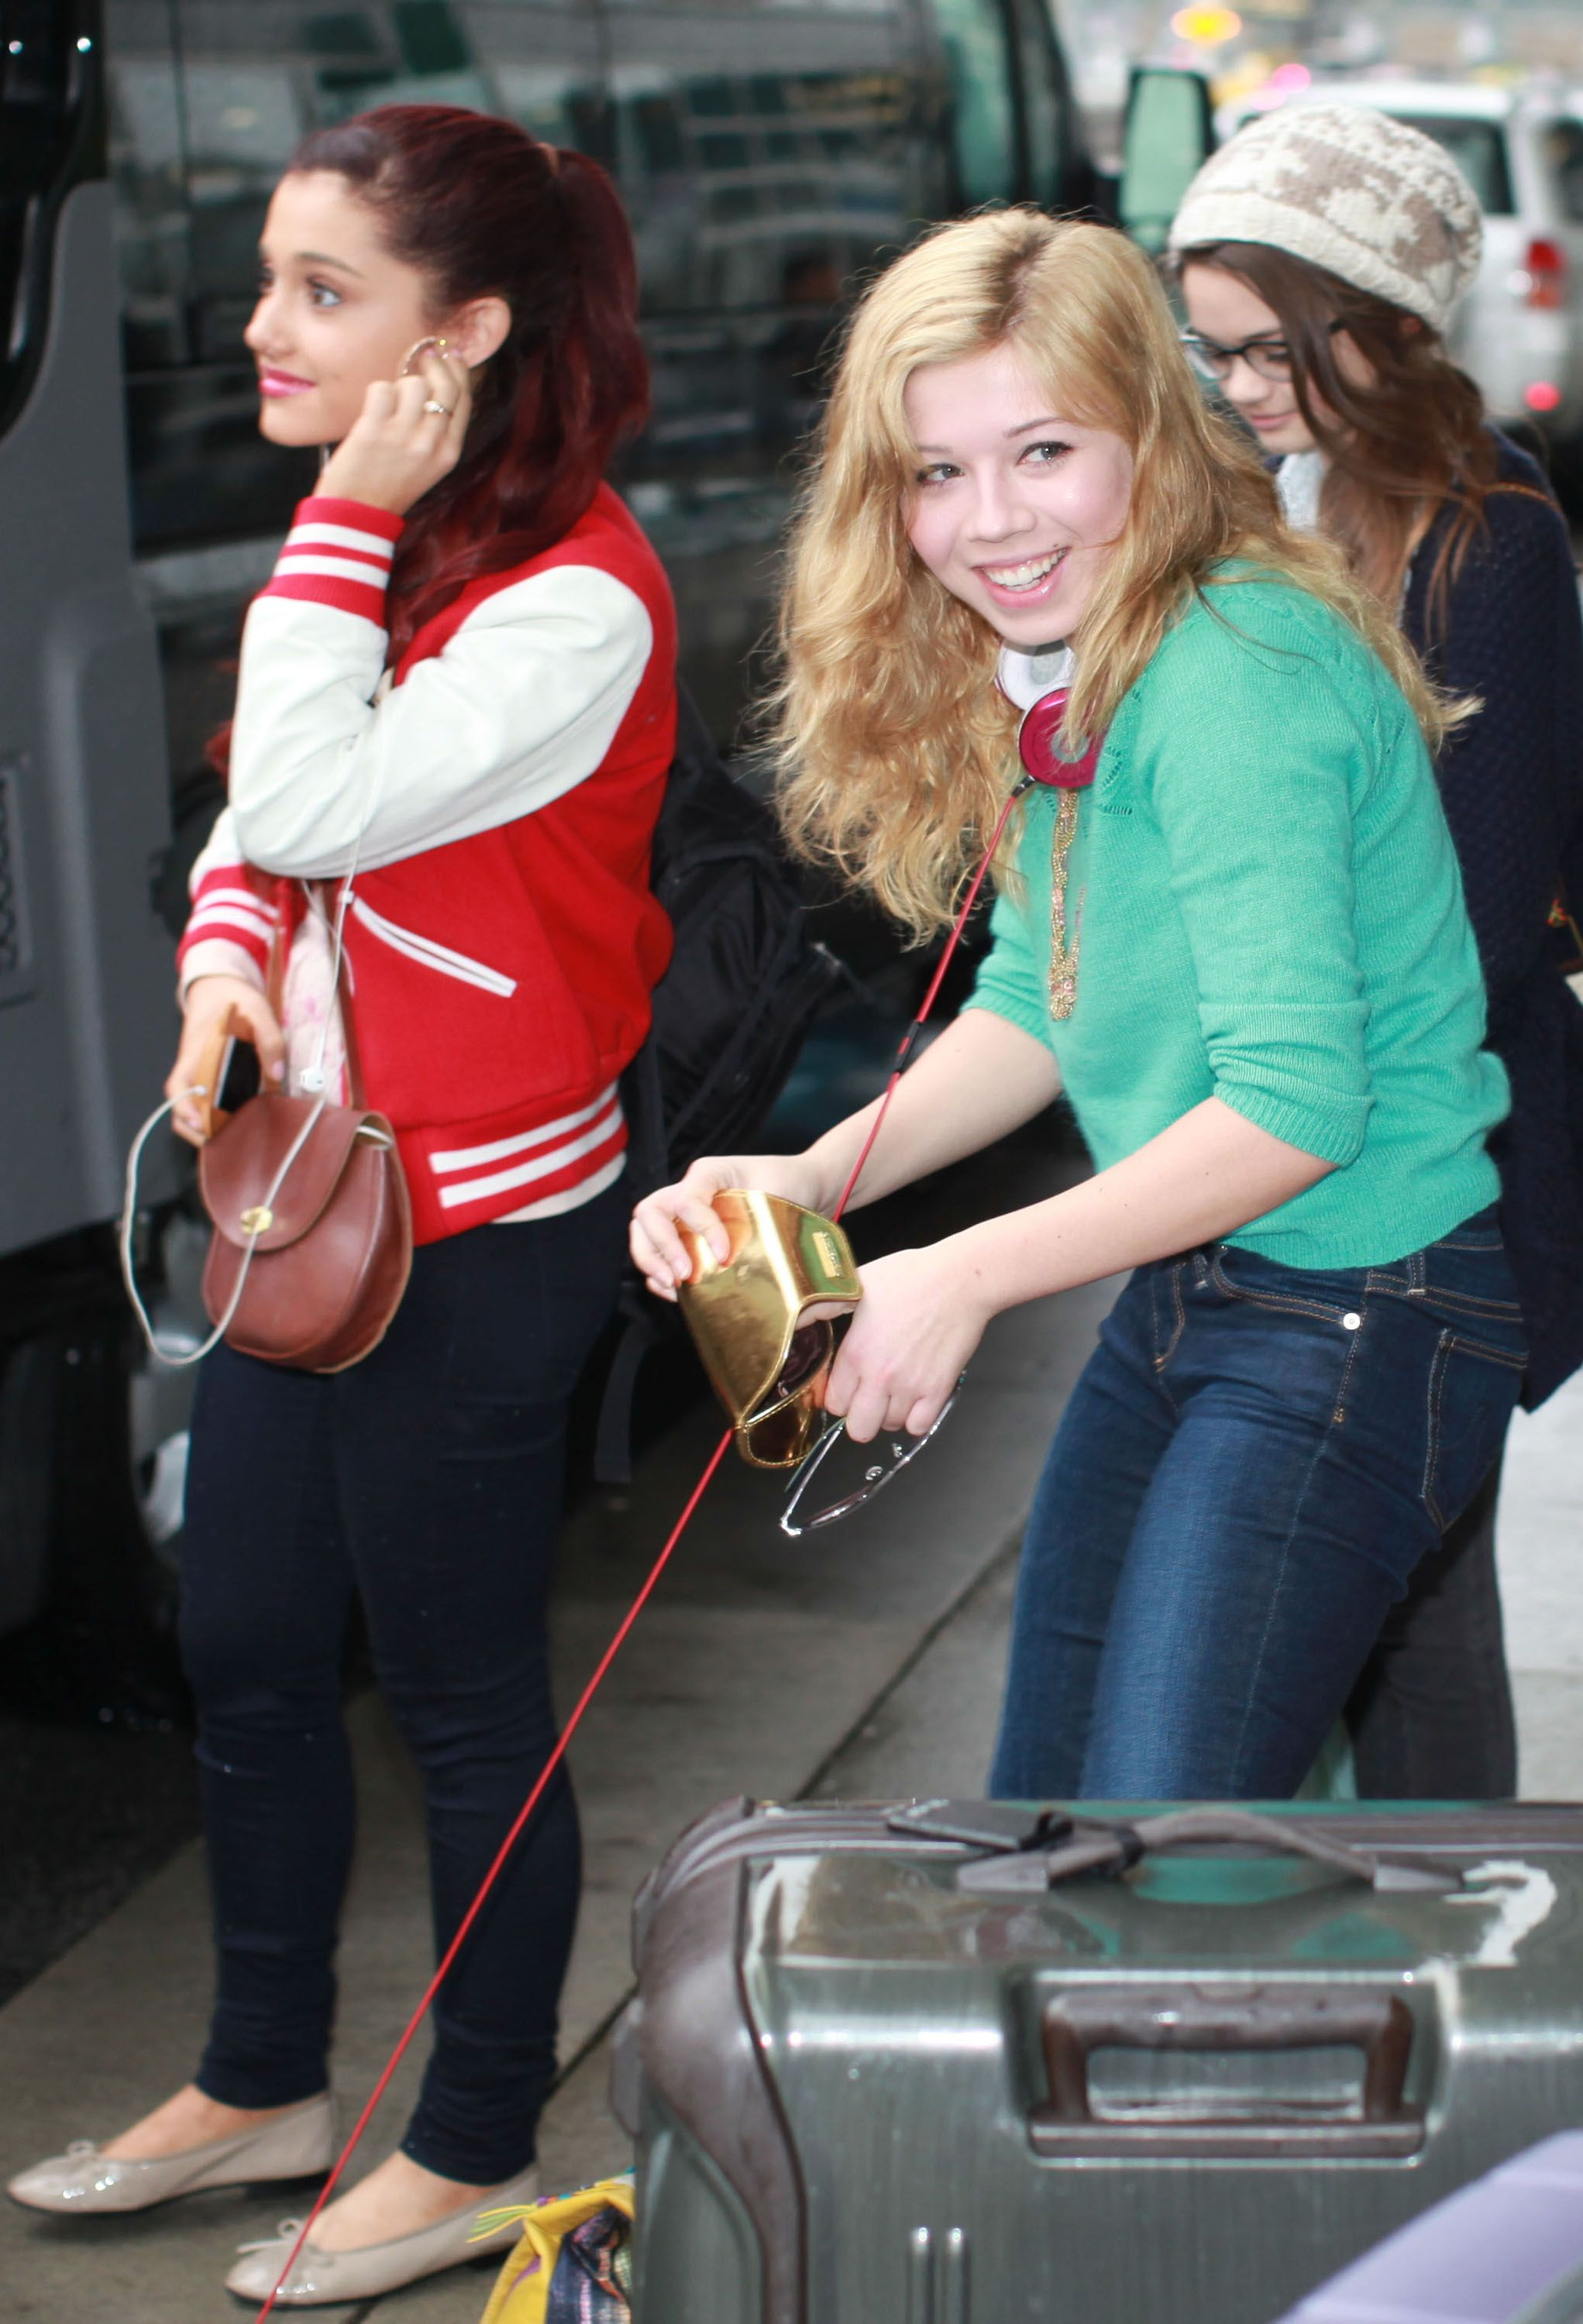 Pin On Sam And Cat Photos